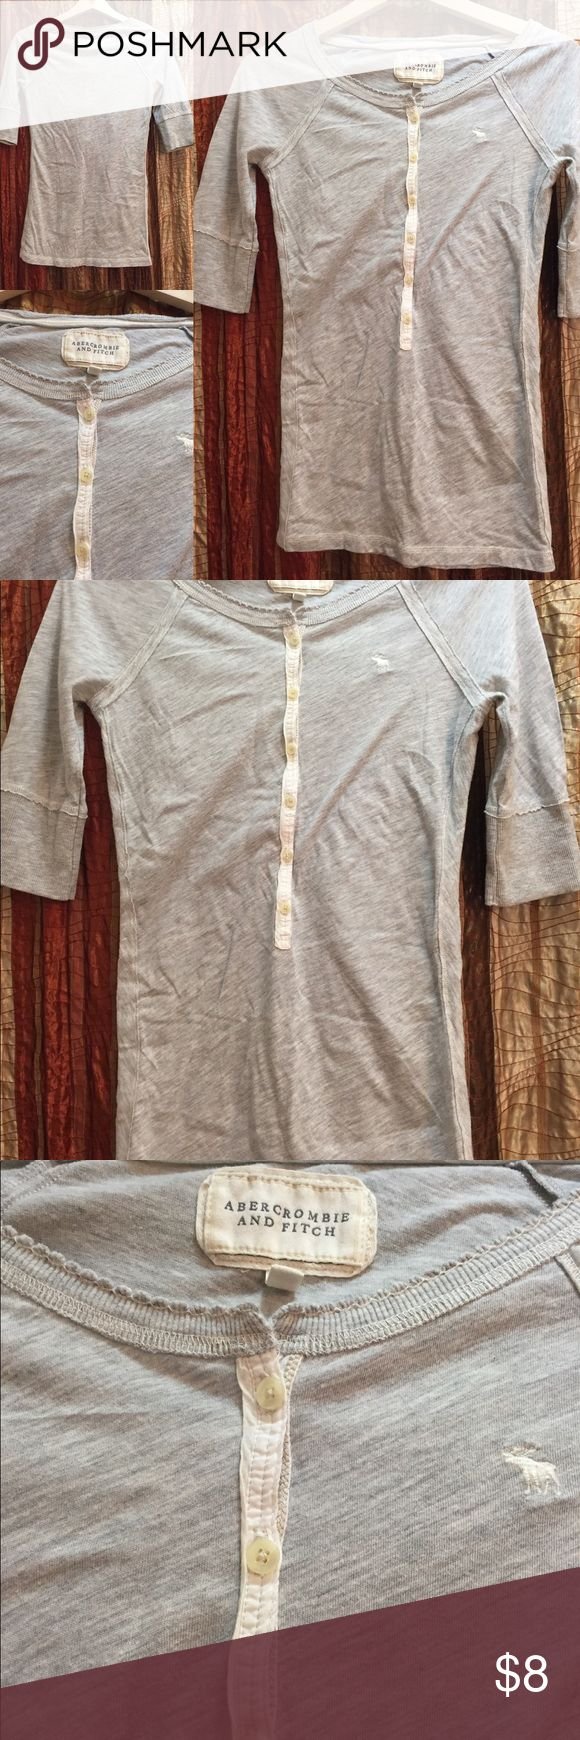 Abercrombie and Fitch Ballet Sleeve Henly 60/40 Cotton Poly HEATHERED Gray with white trim Henly style, ballet sleeves EUC Size Large Abercrombie & Fitch Tops